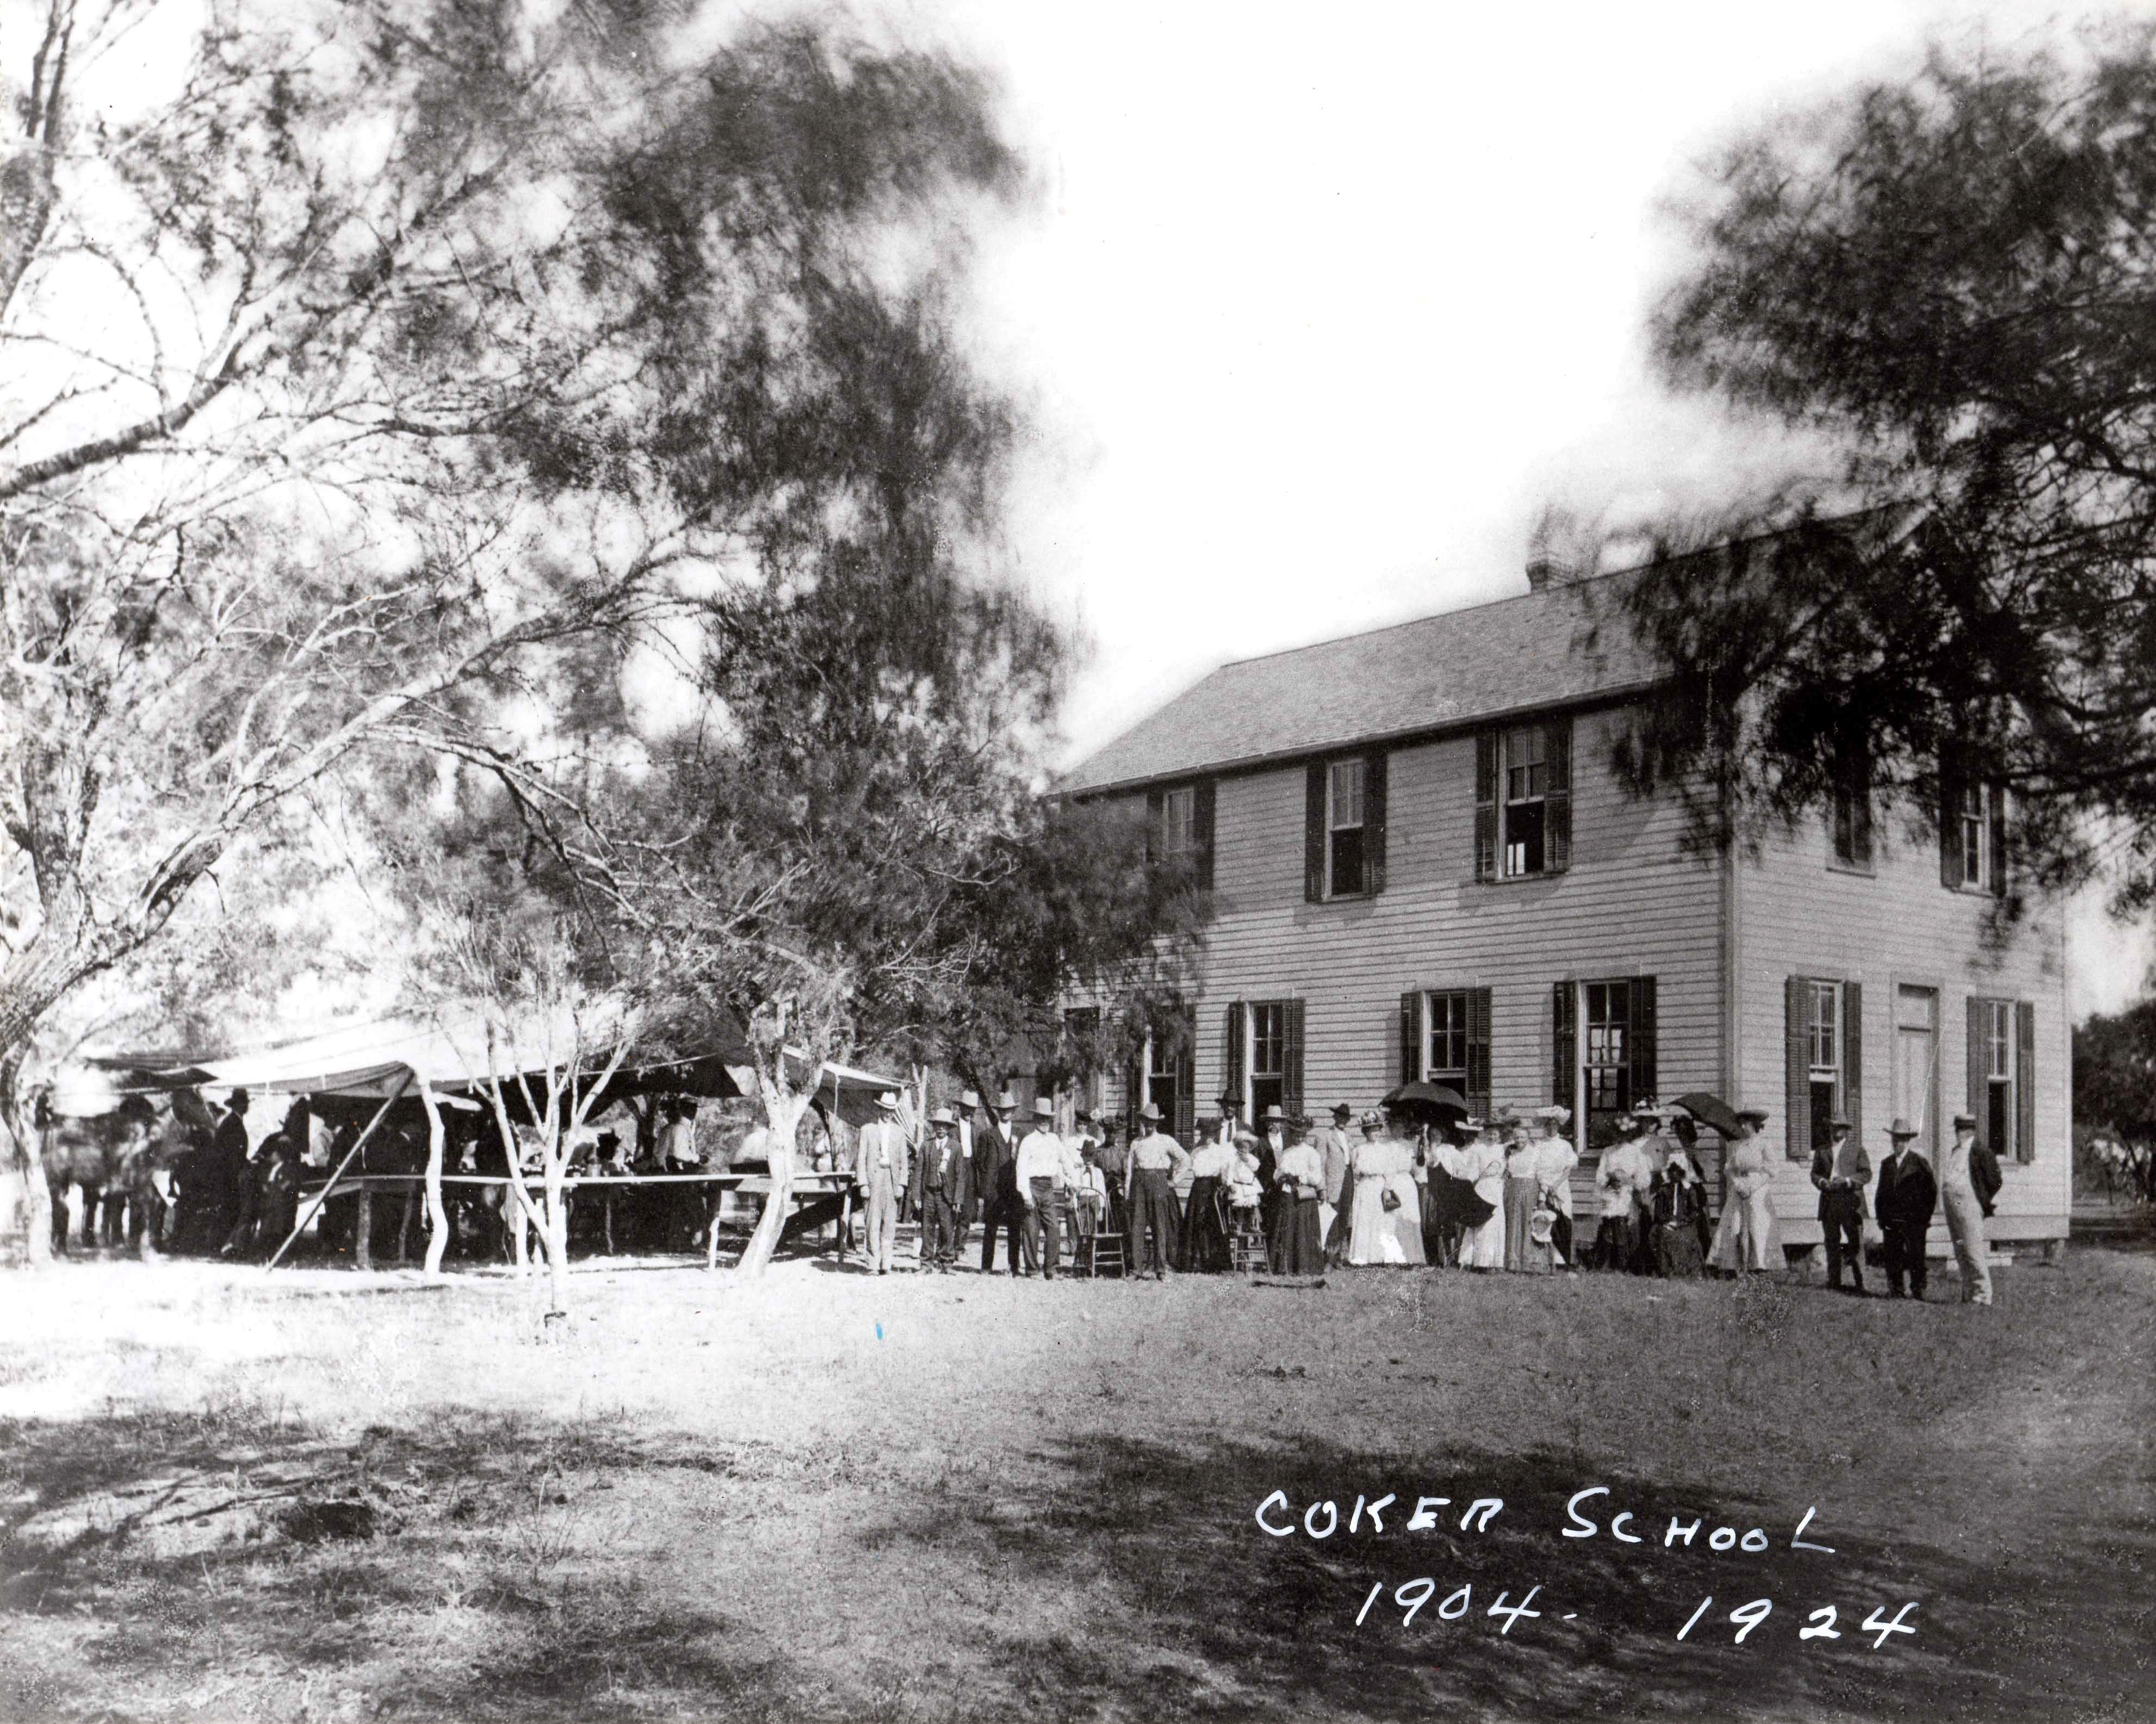 Coker School - second building